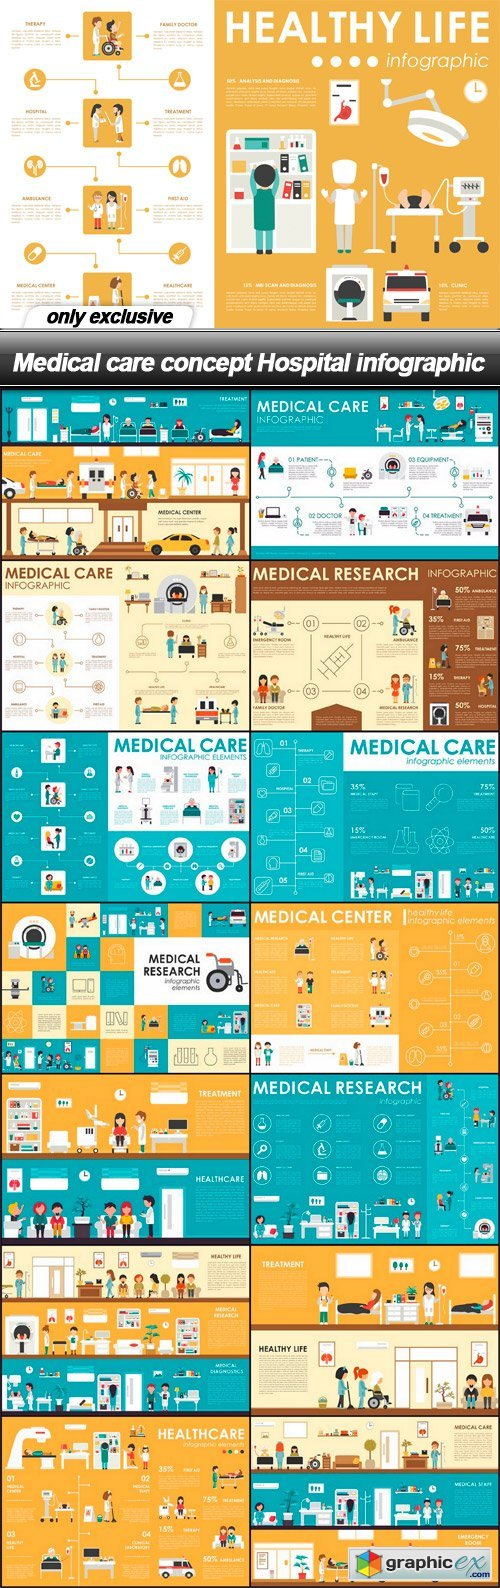 Medical care concept Hospital infographic - 15 EPS